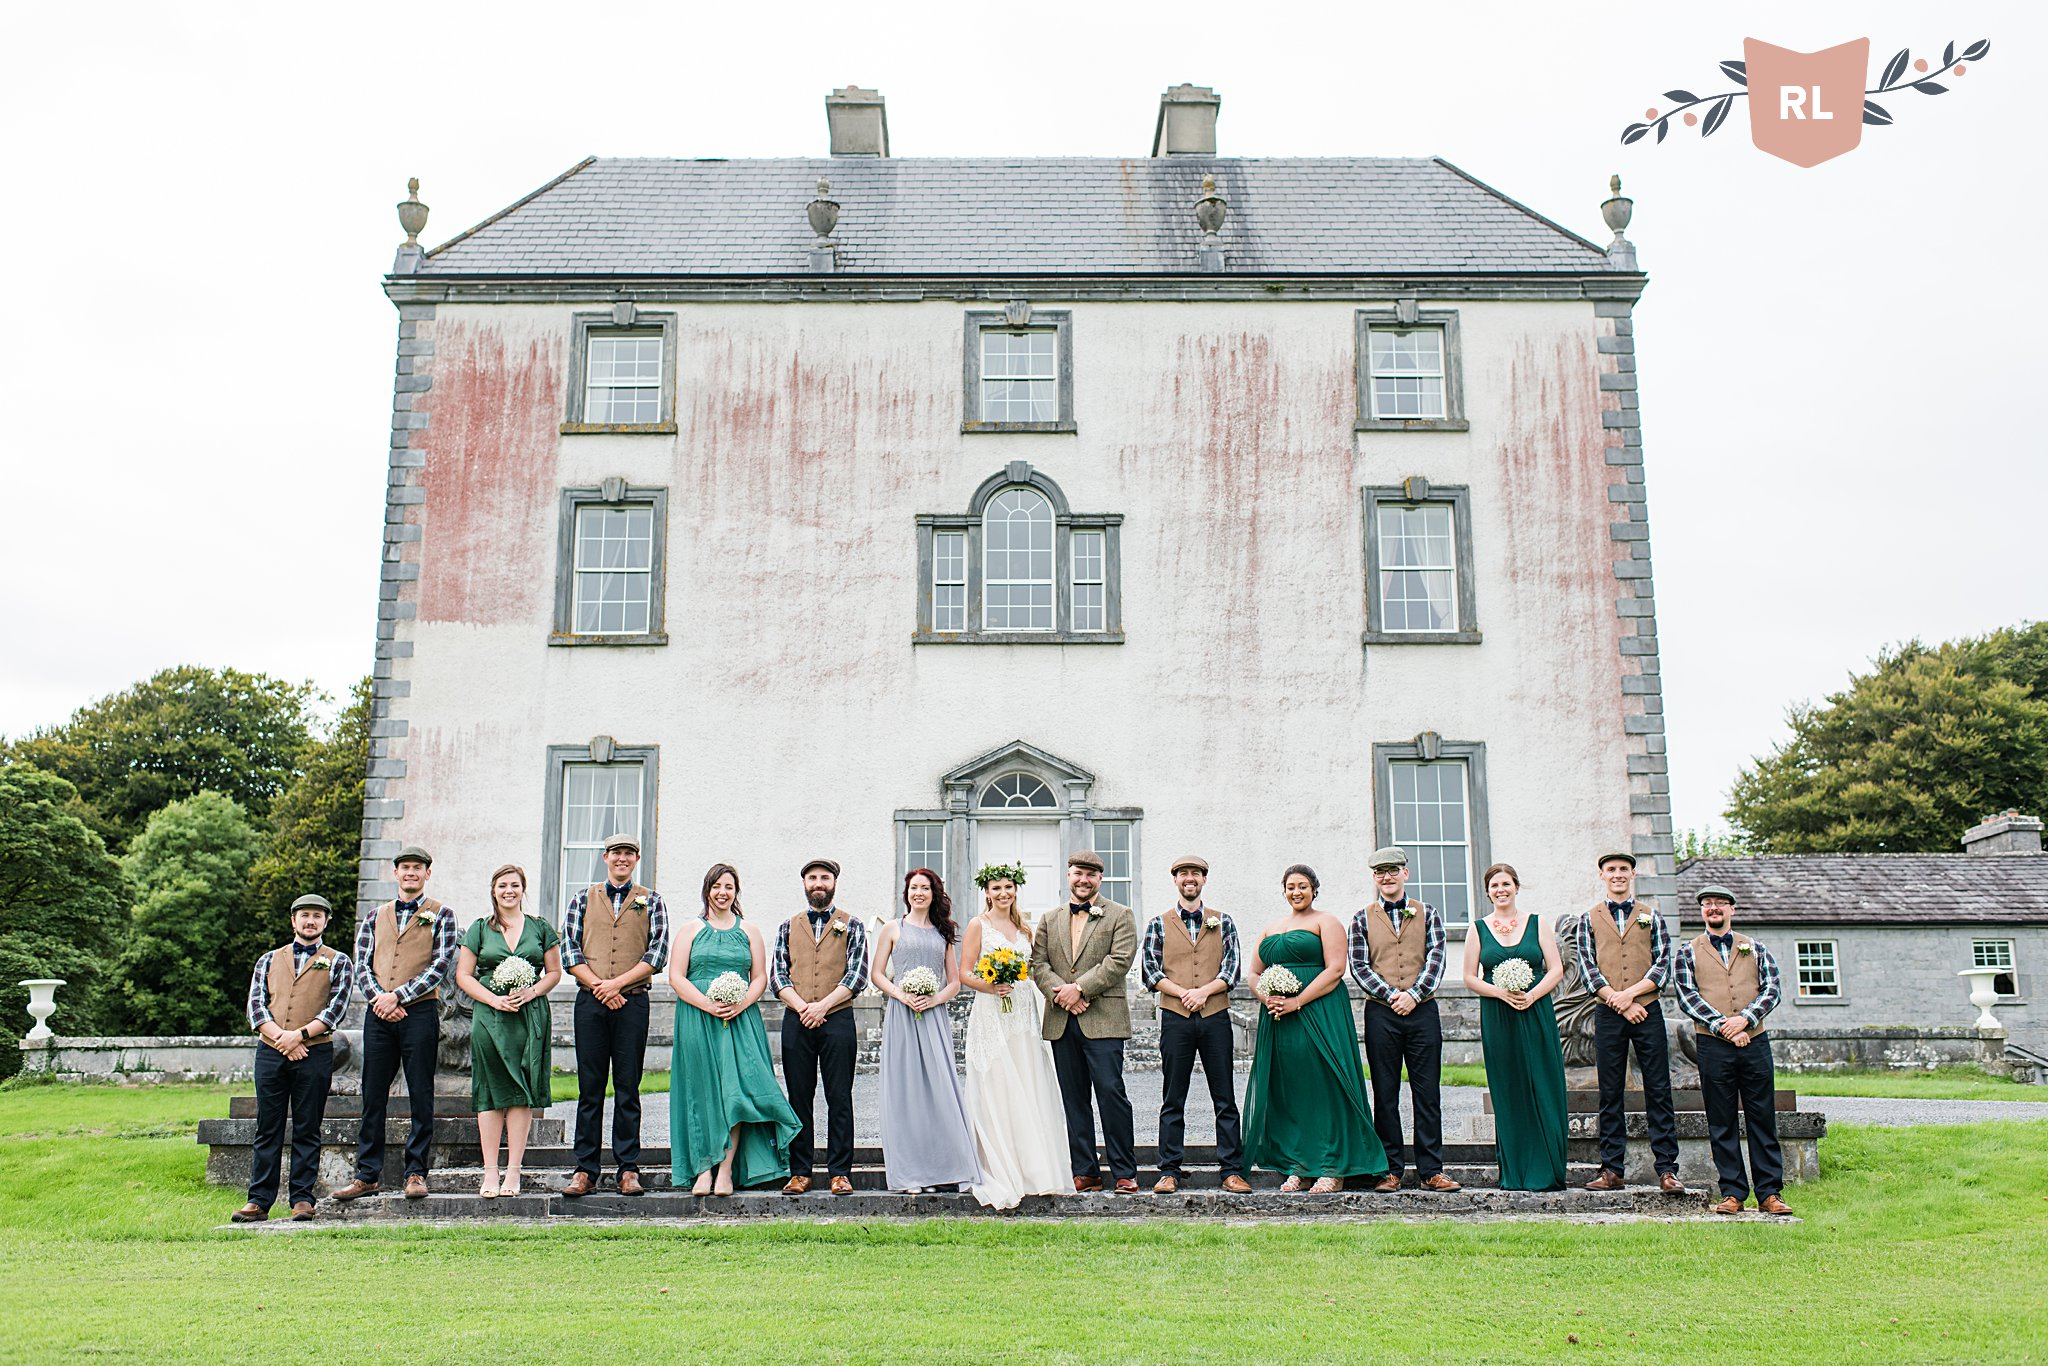 RossCastleWedding_Ireland_1029.jpg